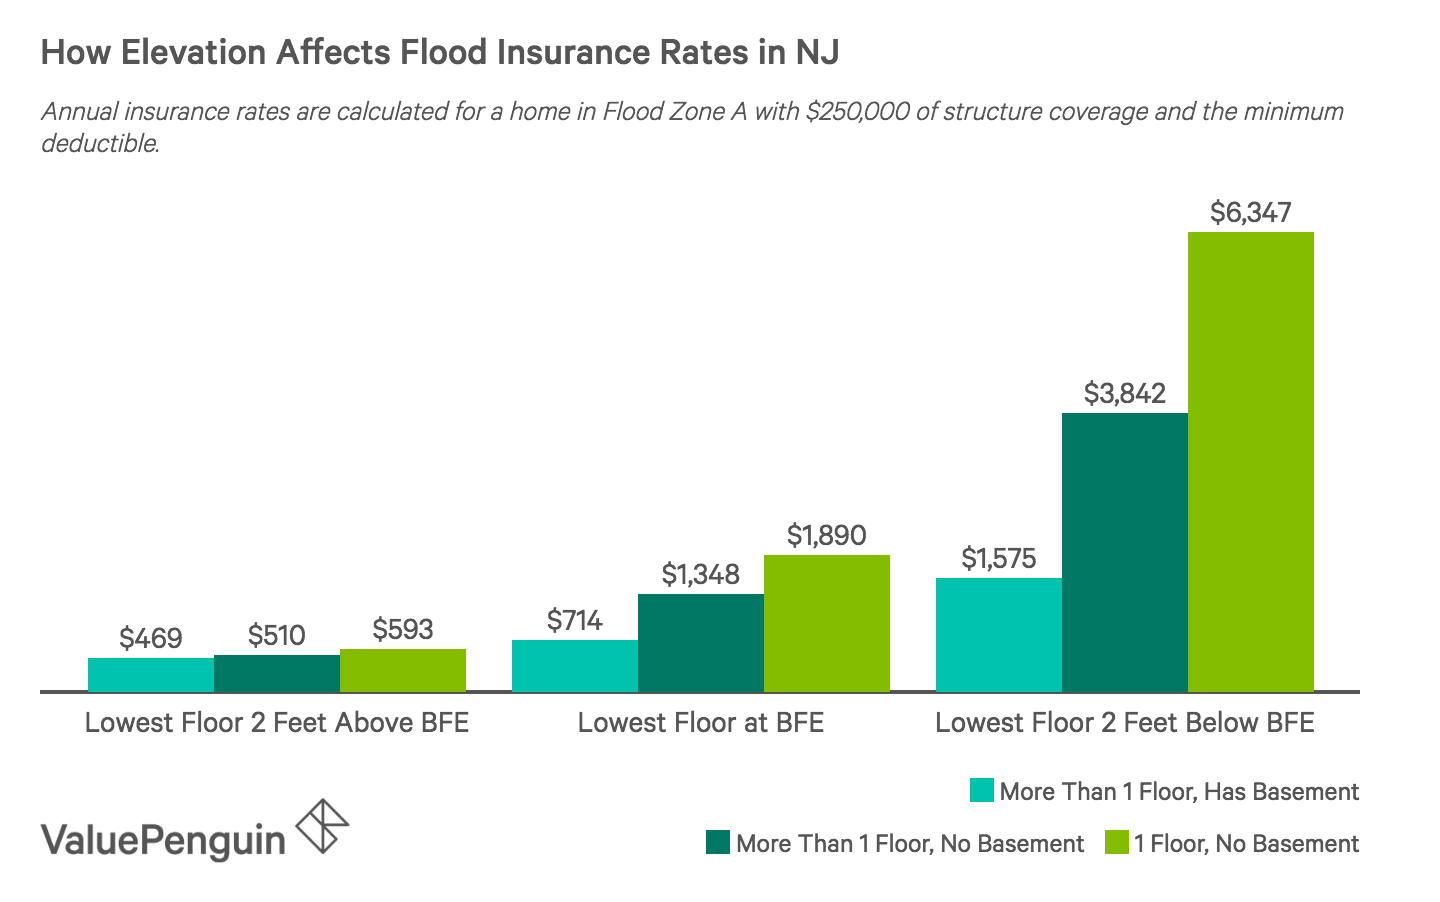 How the elevation of your home affects your flood insurance rates